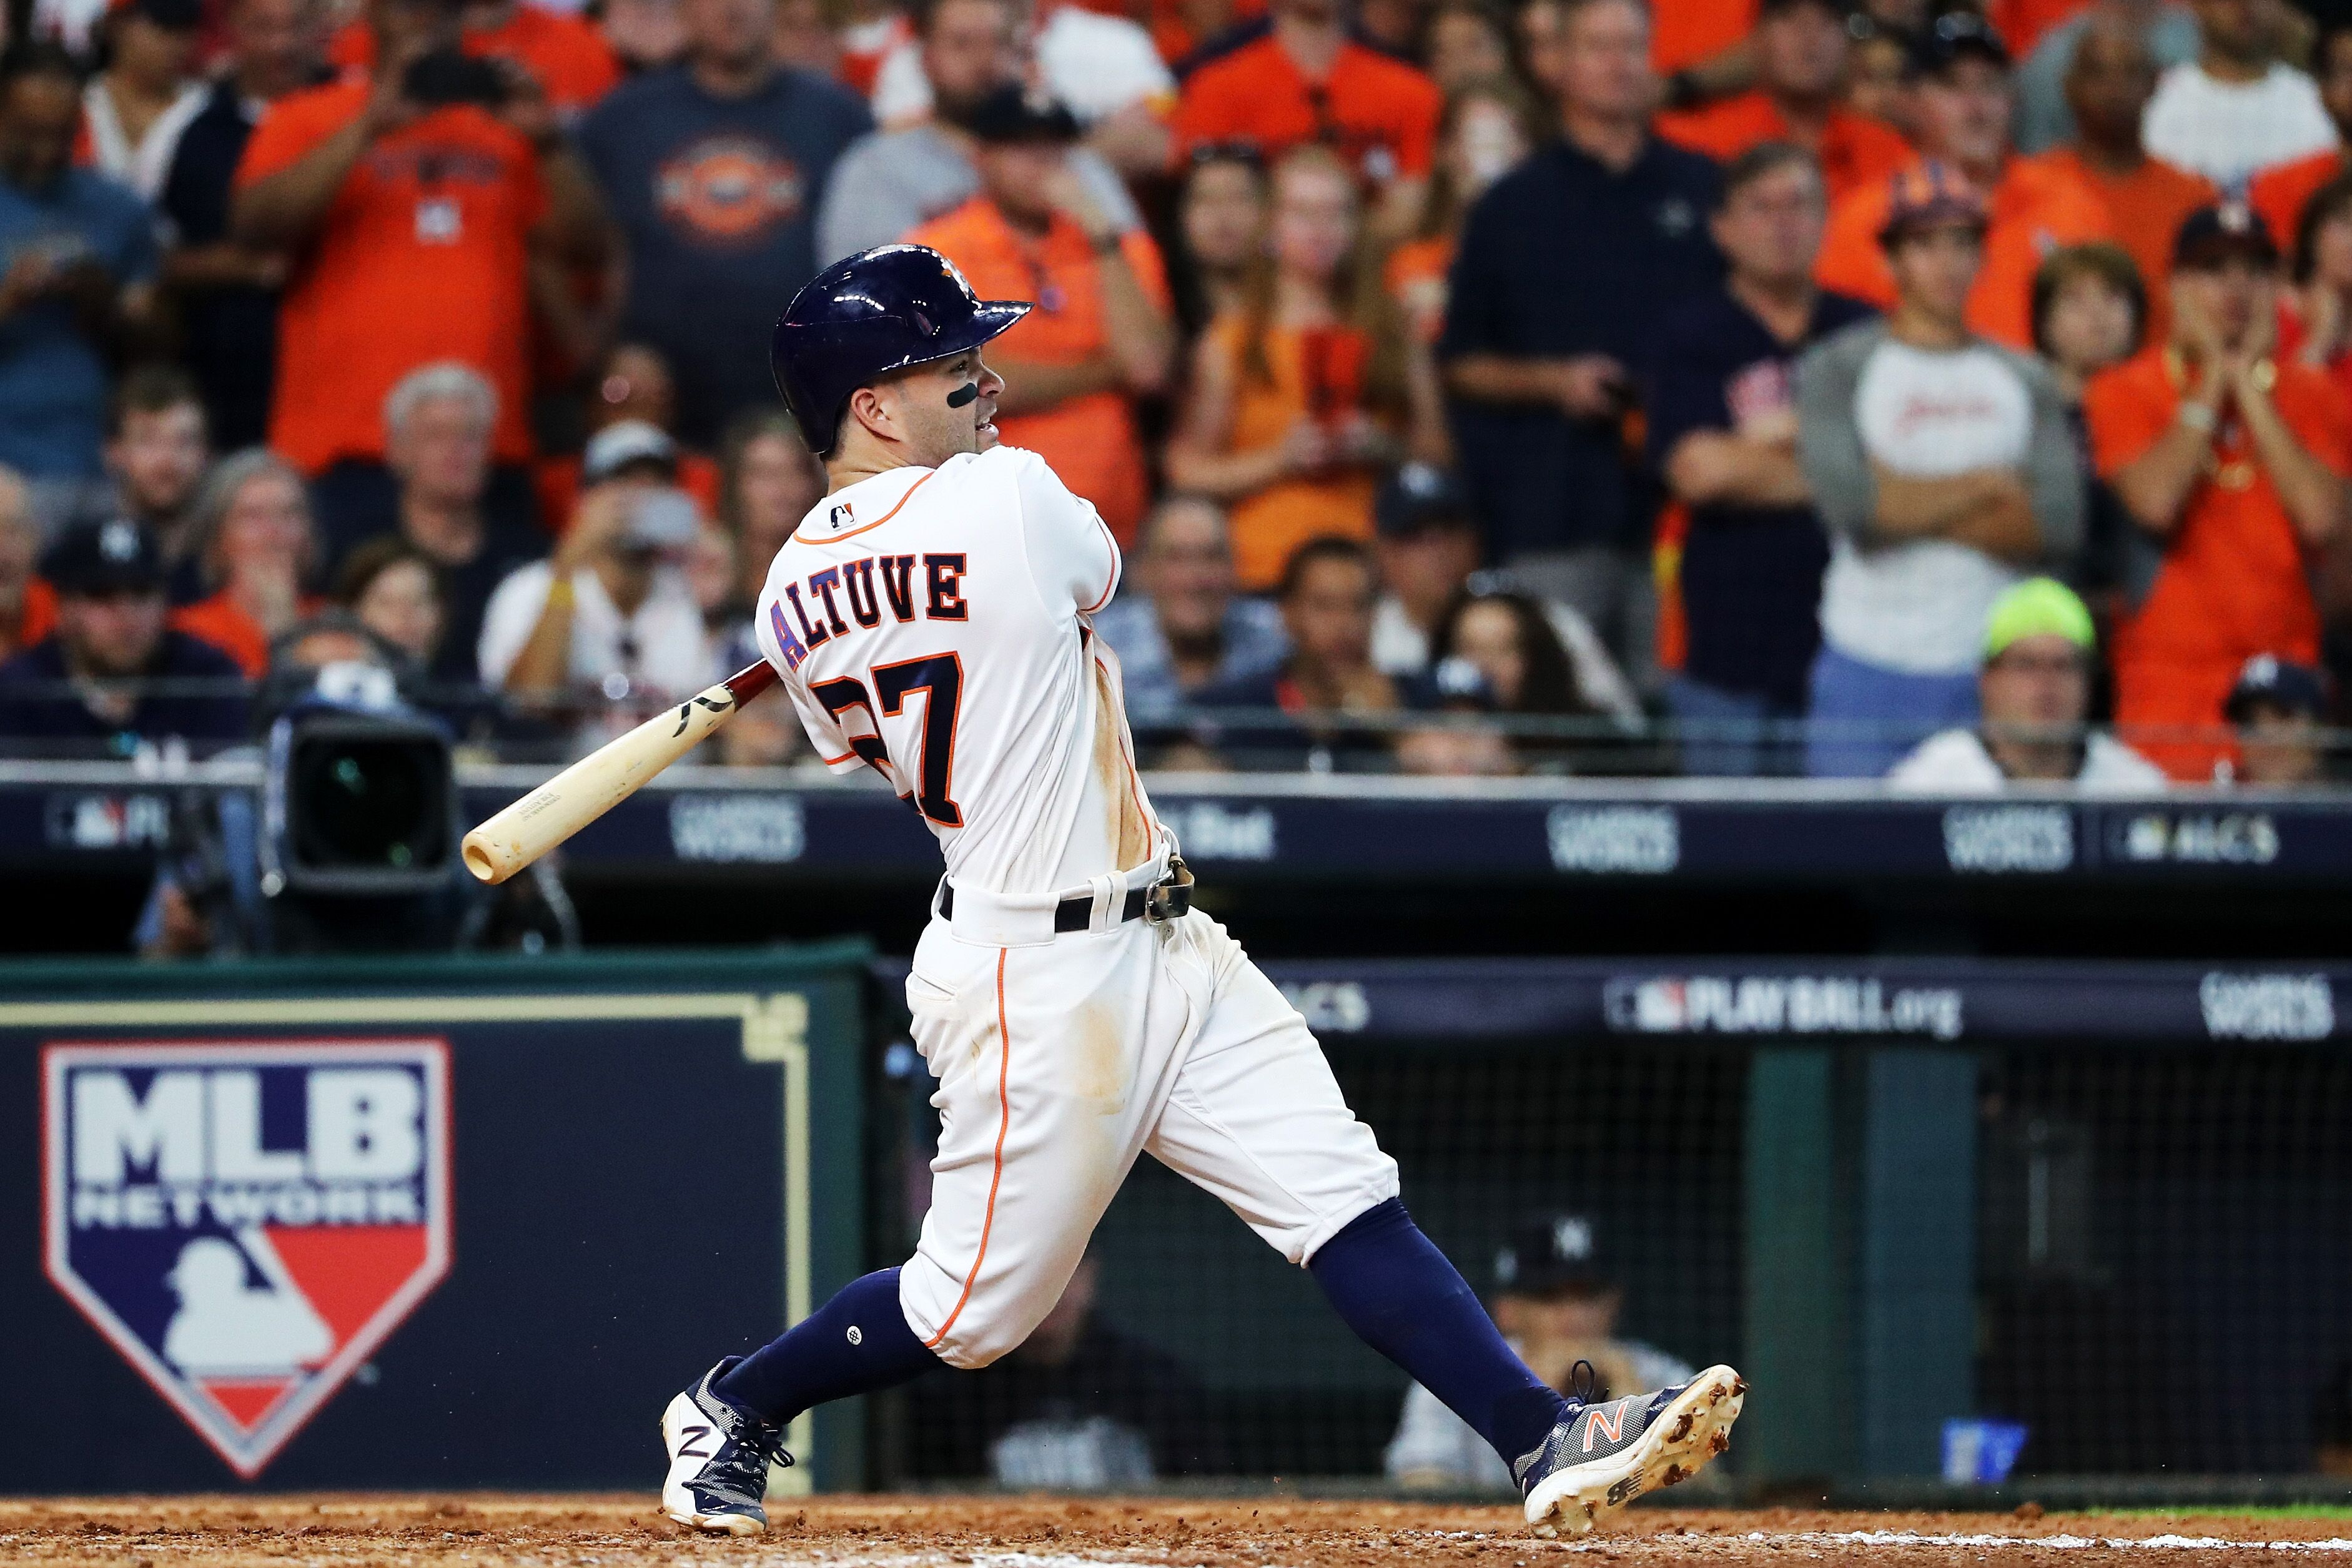 861381672-league-championship-series-new-york-yankees-v-houston-astros-game-two.jpg